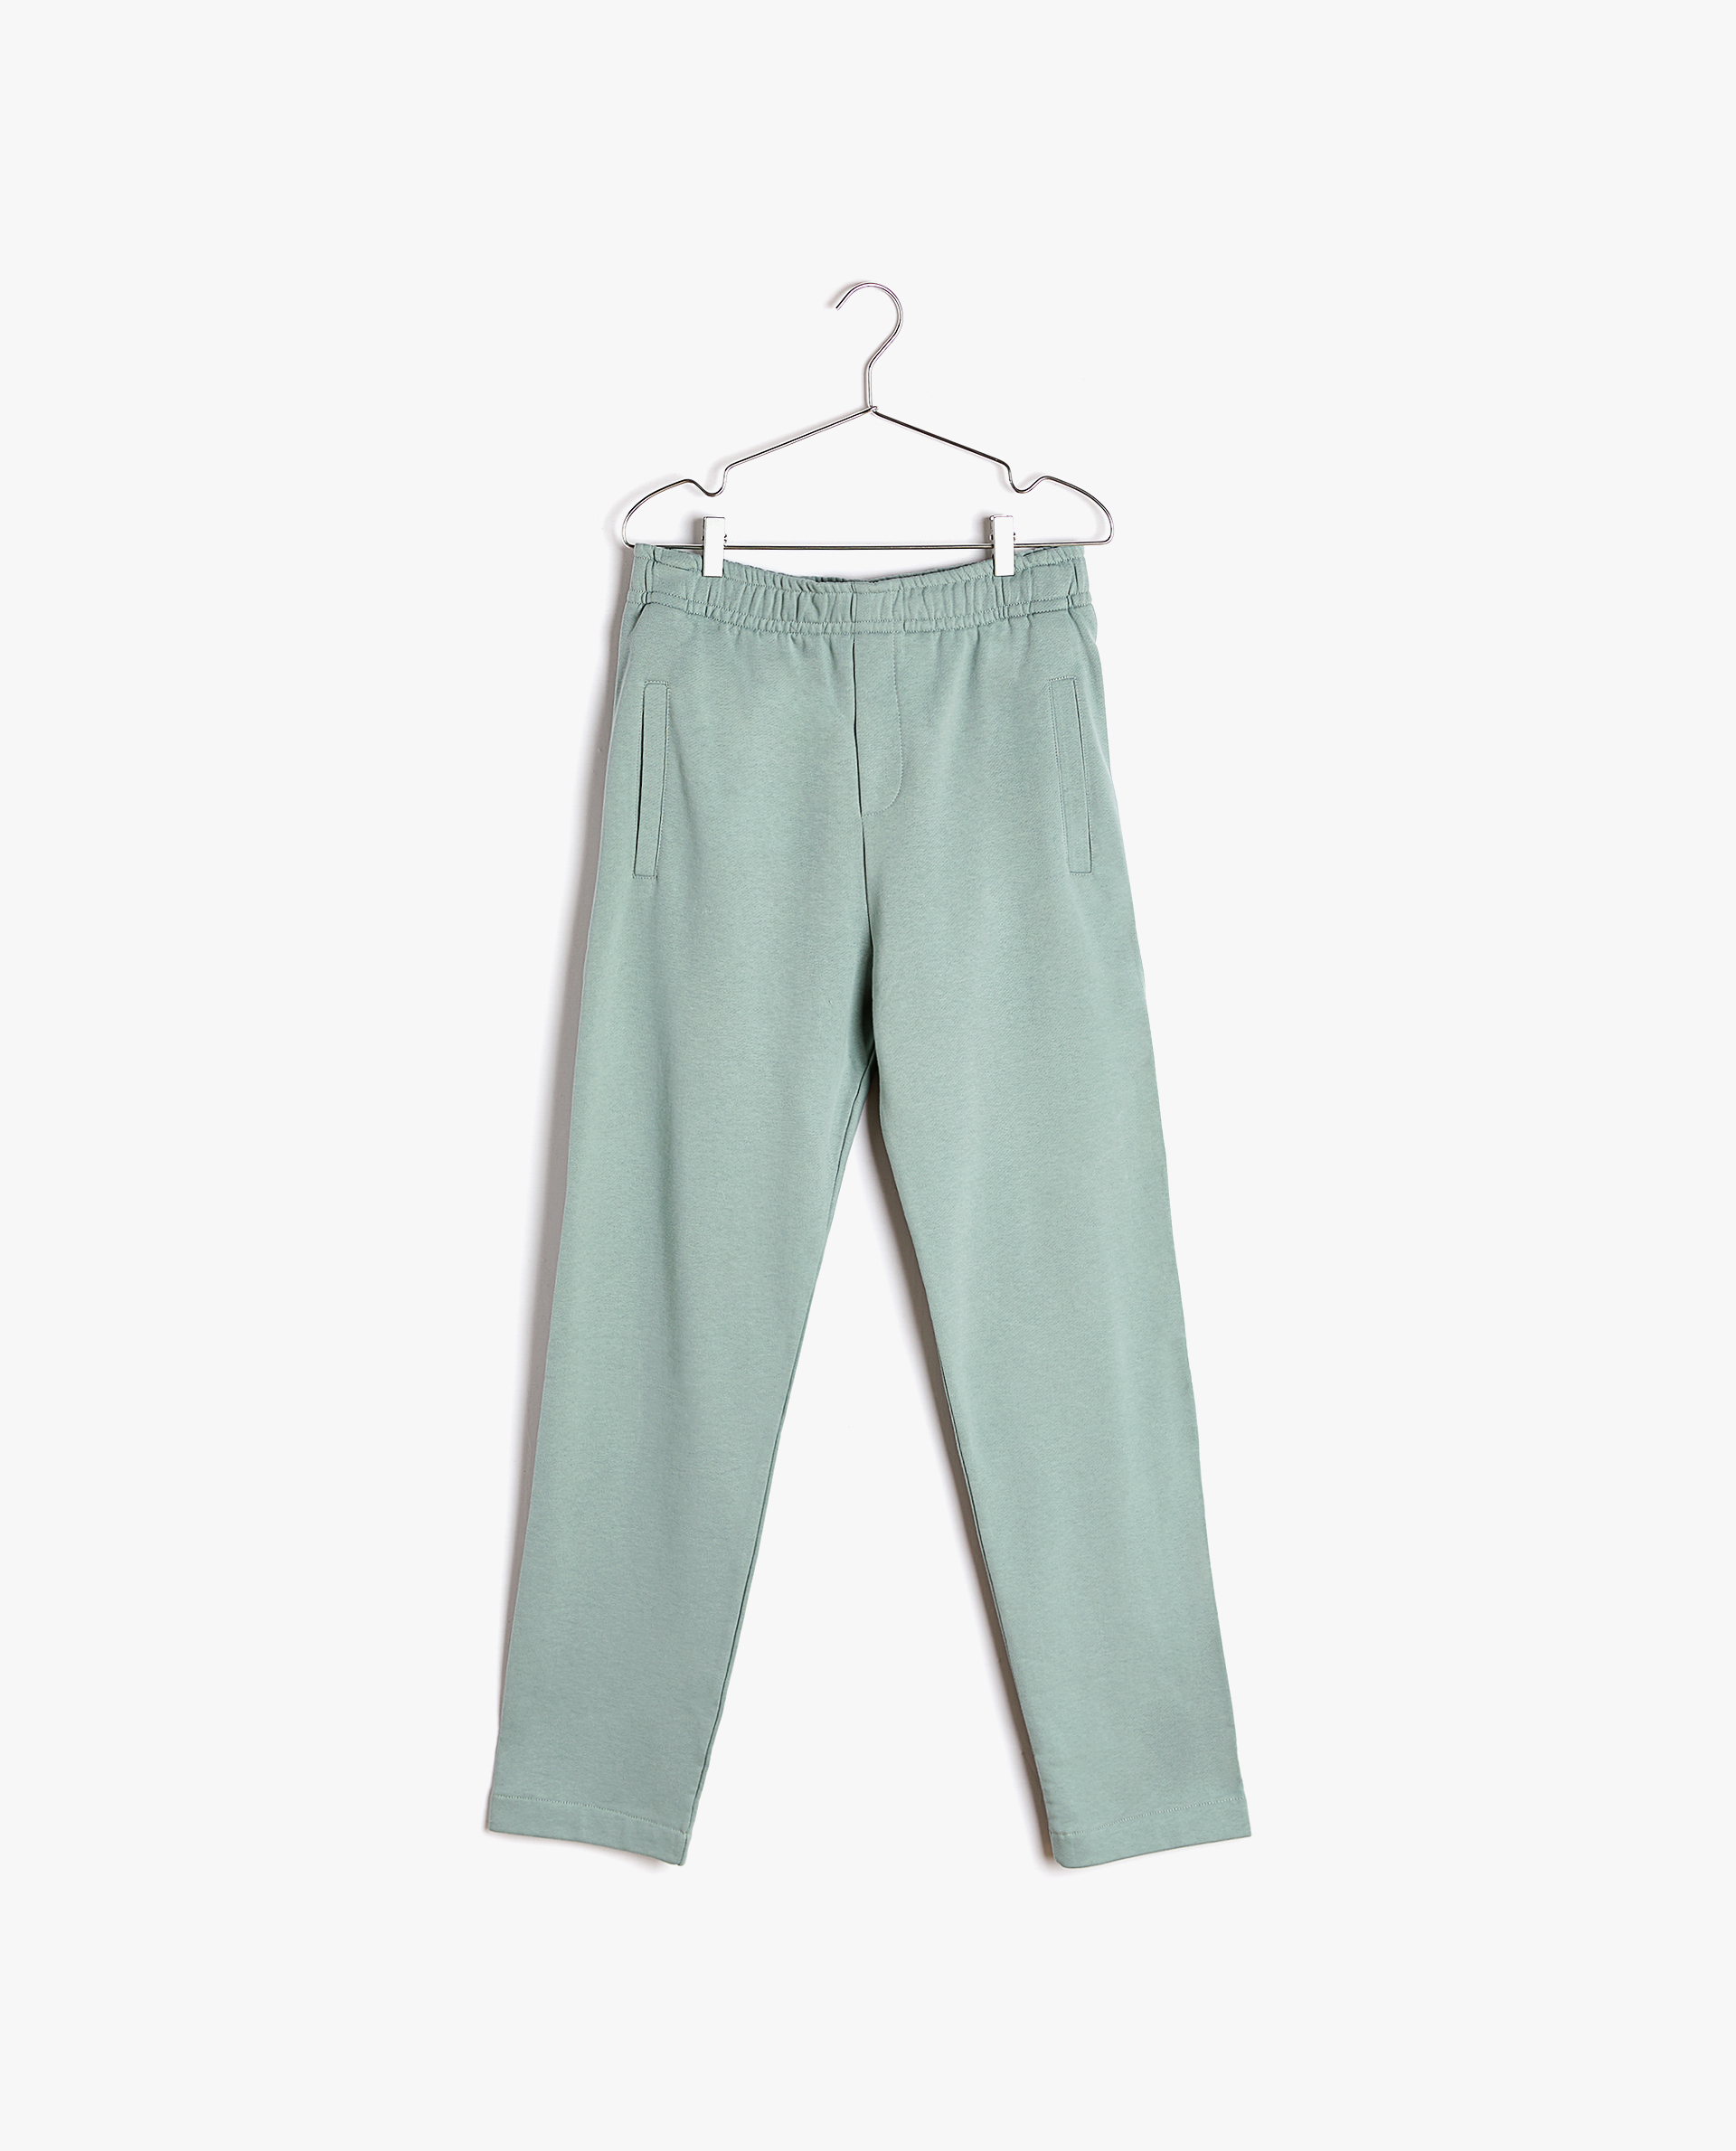 4376eb70 SOLID COTTON PANTS - MEN - CLOTHING - CLOTHING & FOOTWEAR - BEDROOM ...